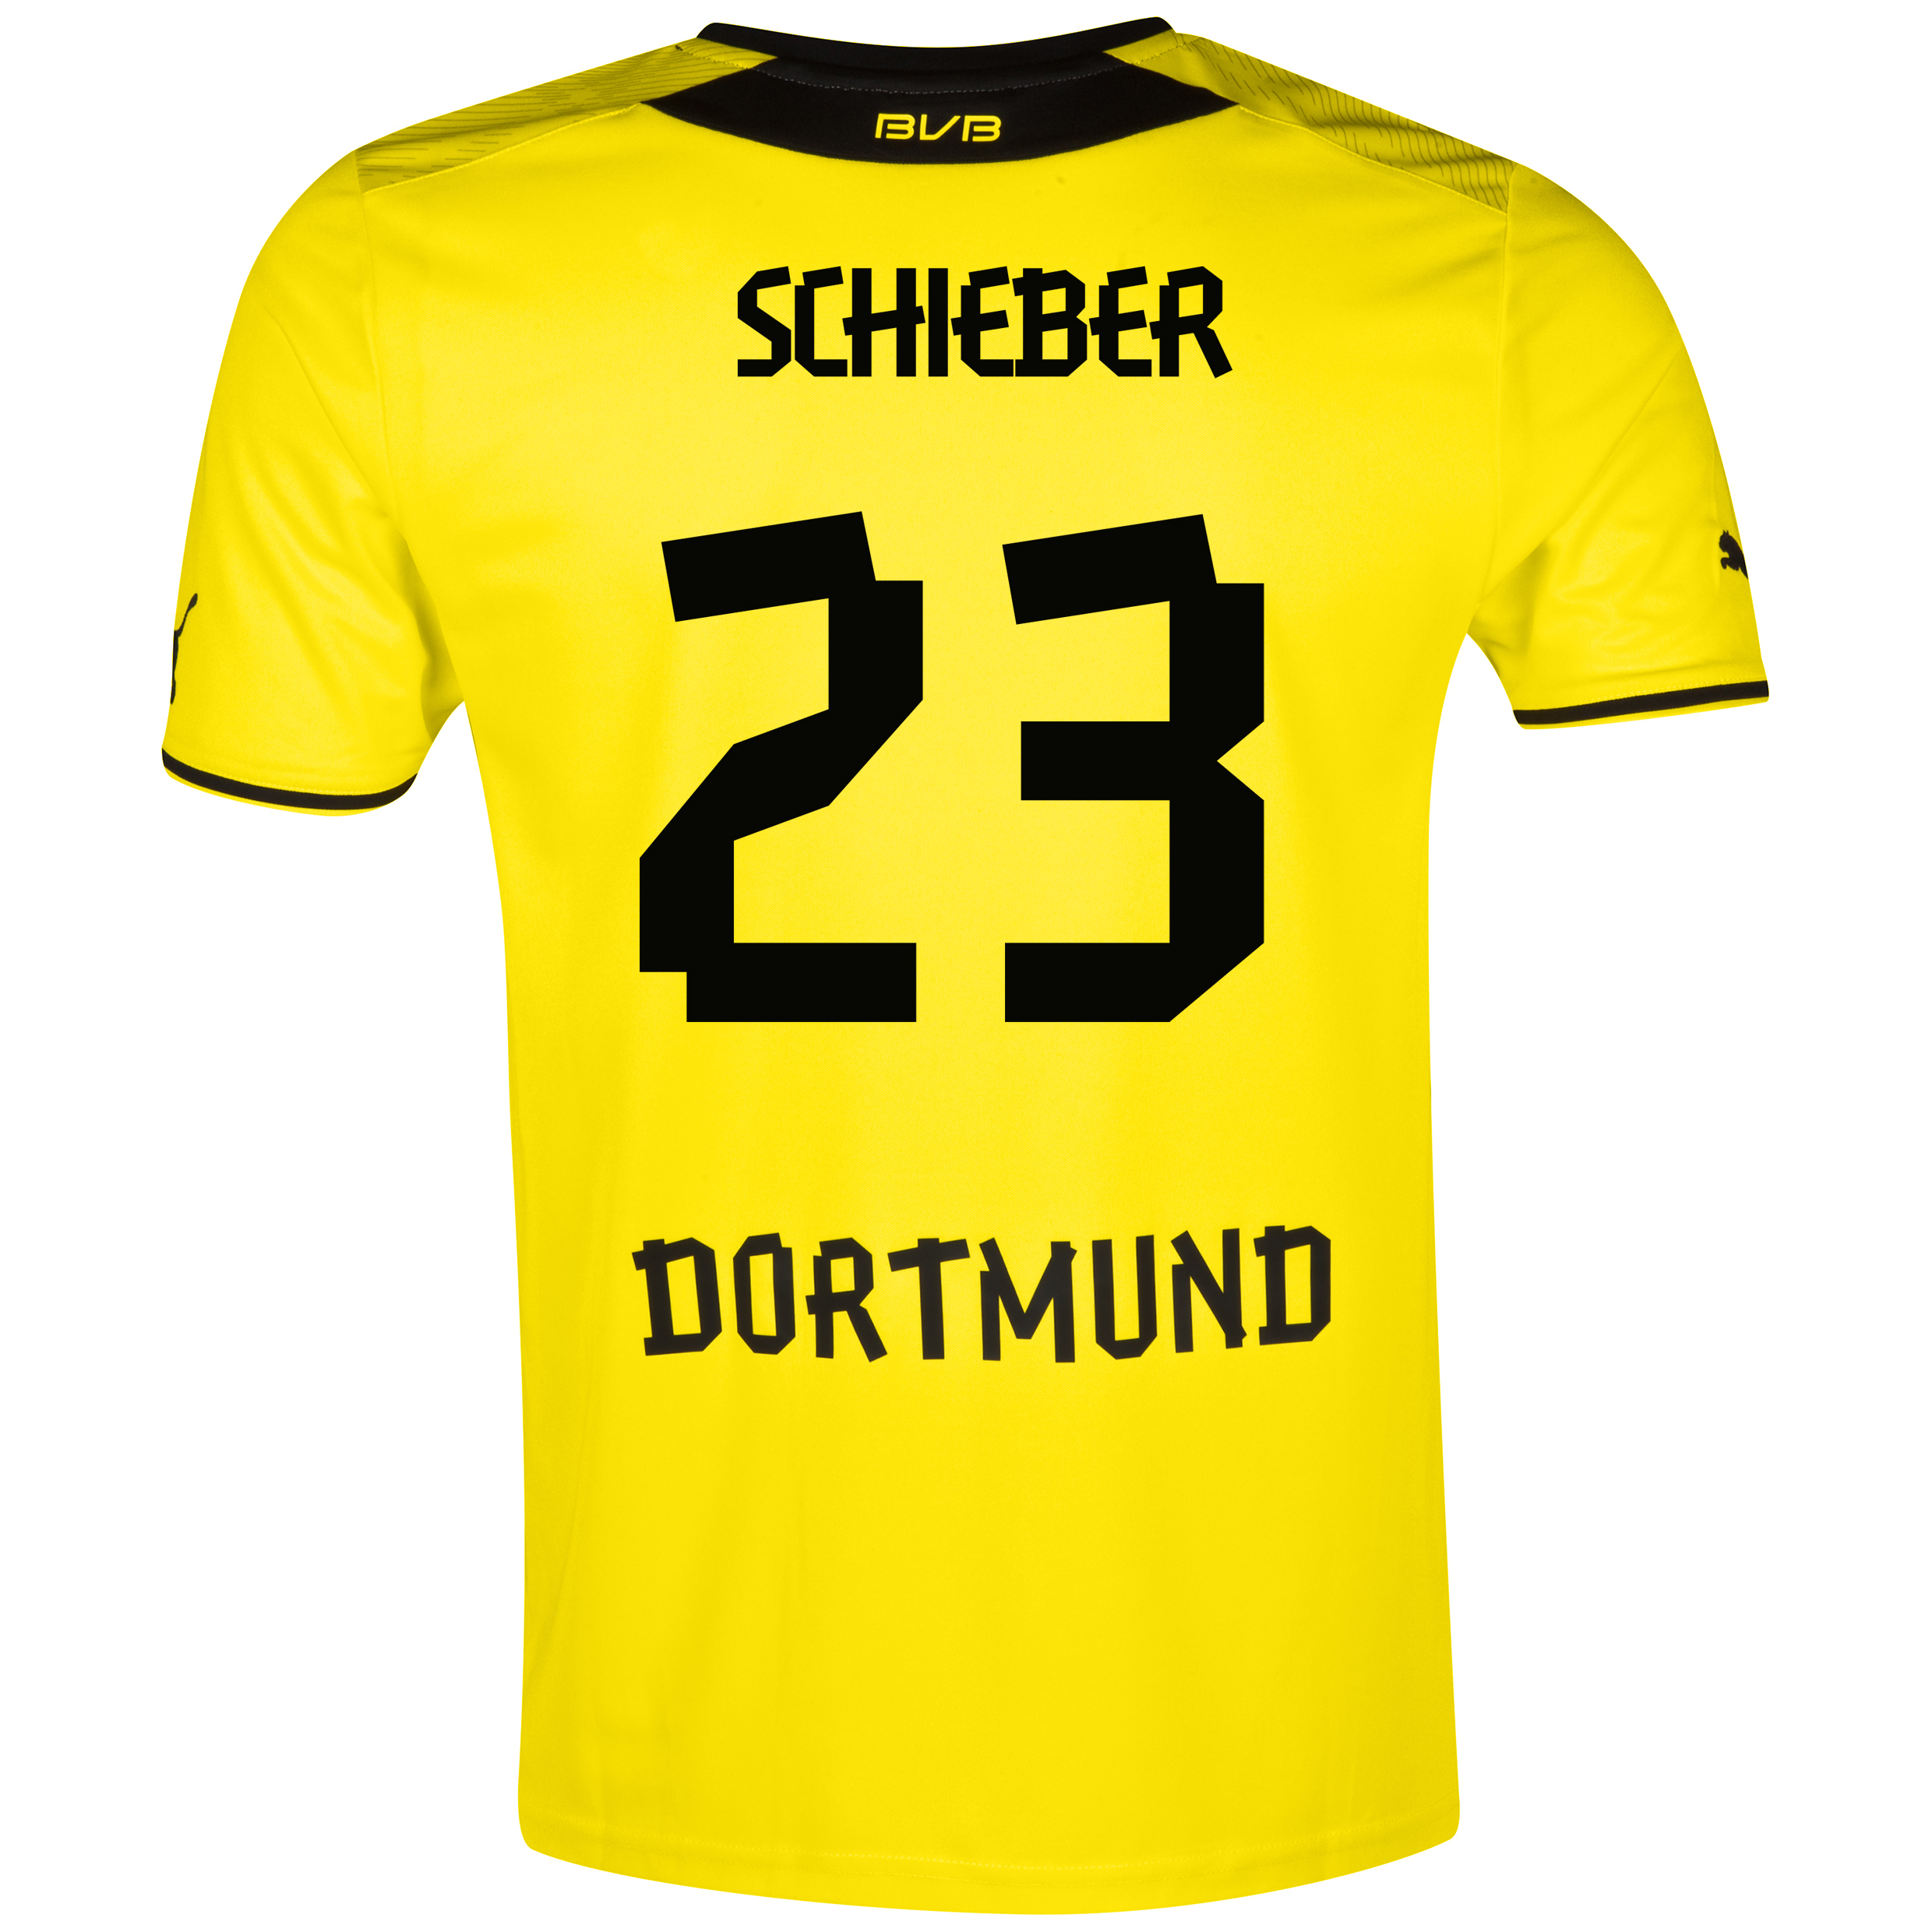 BVB Home Shirt 2013/14 with Schieber 23 printing